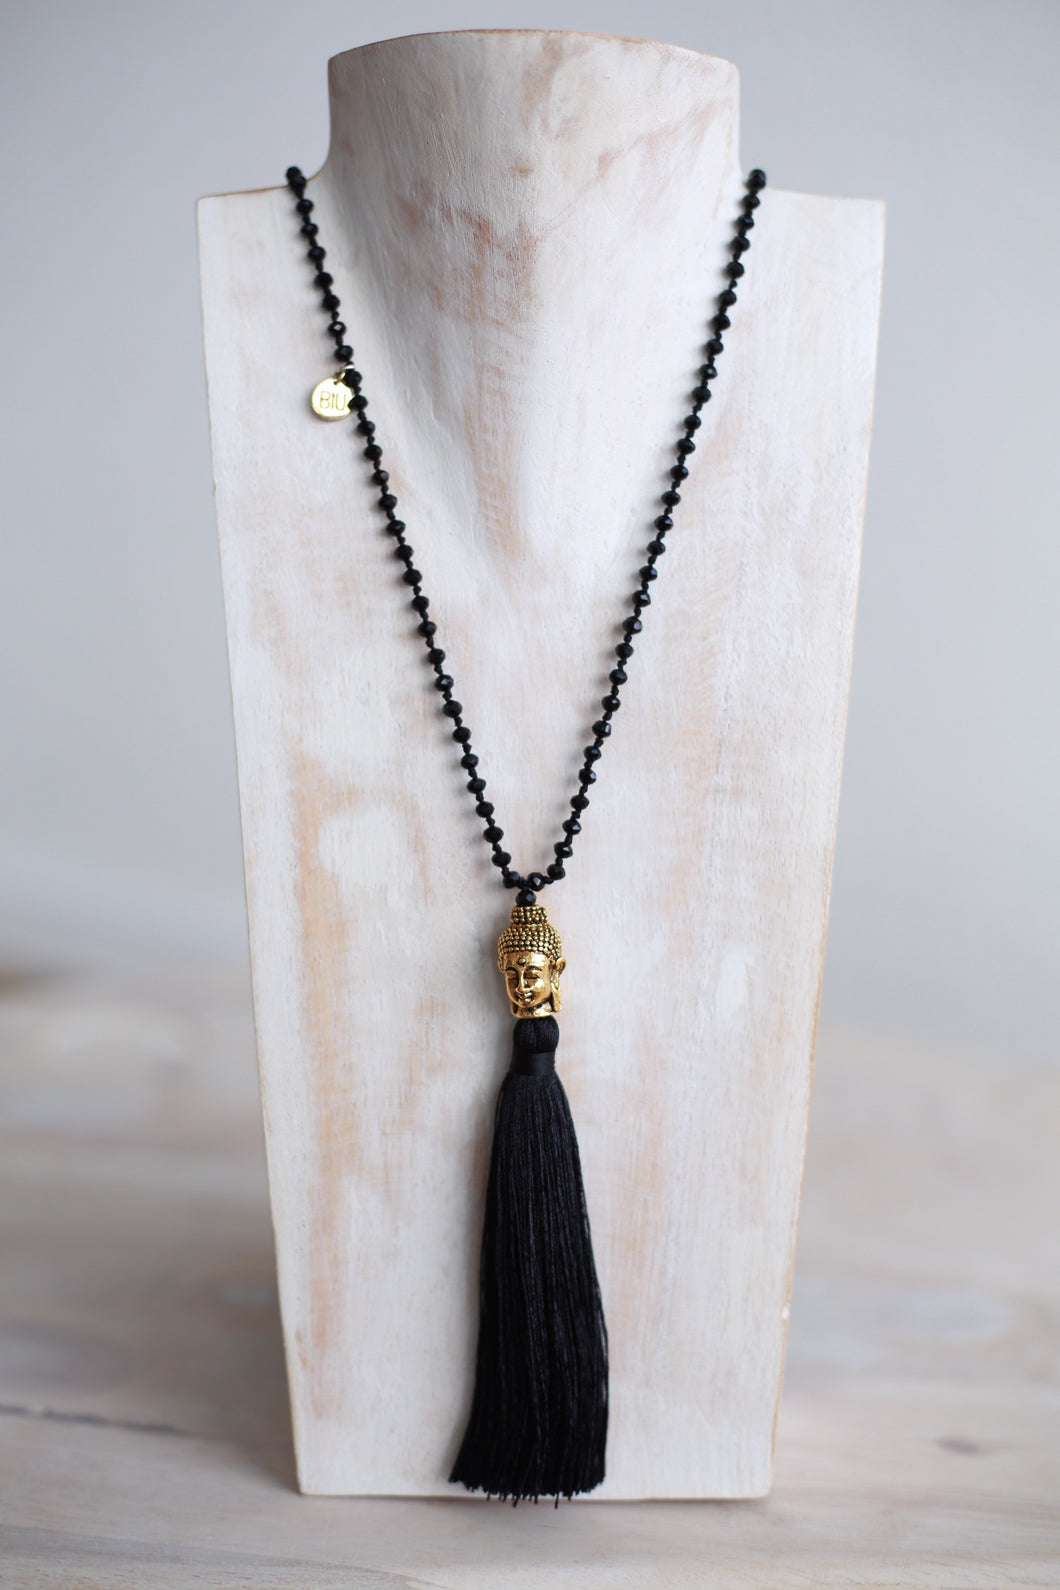 INIKA necklace with gold buddha